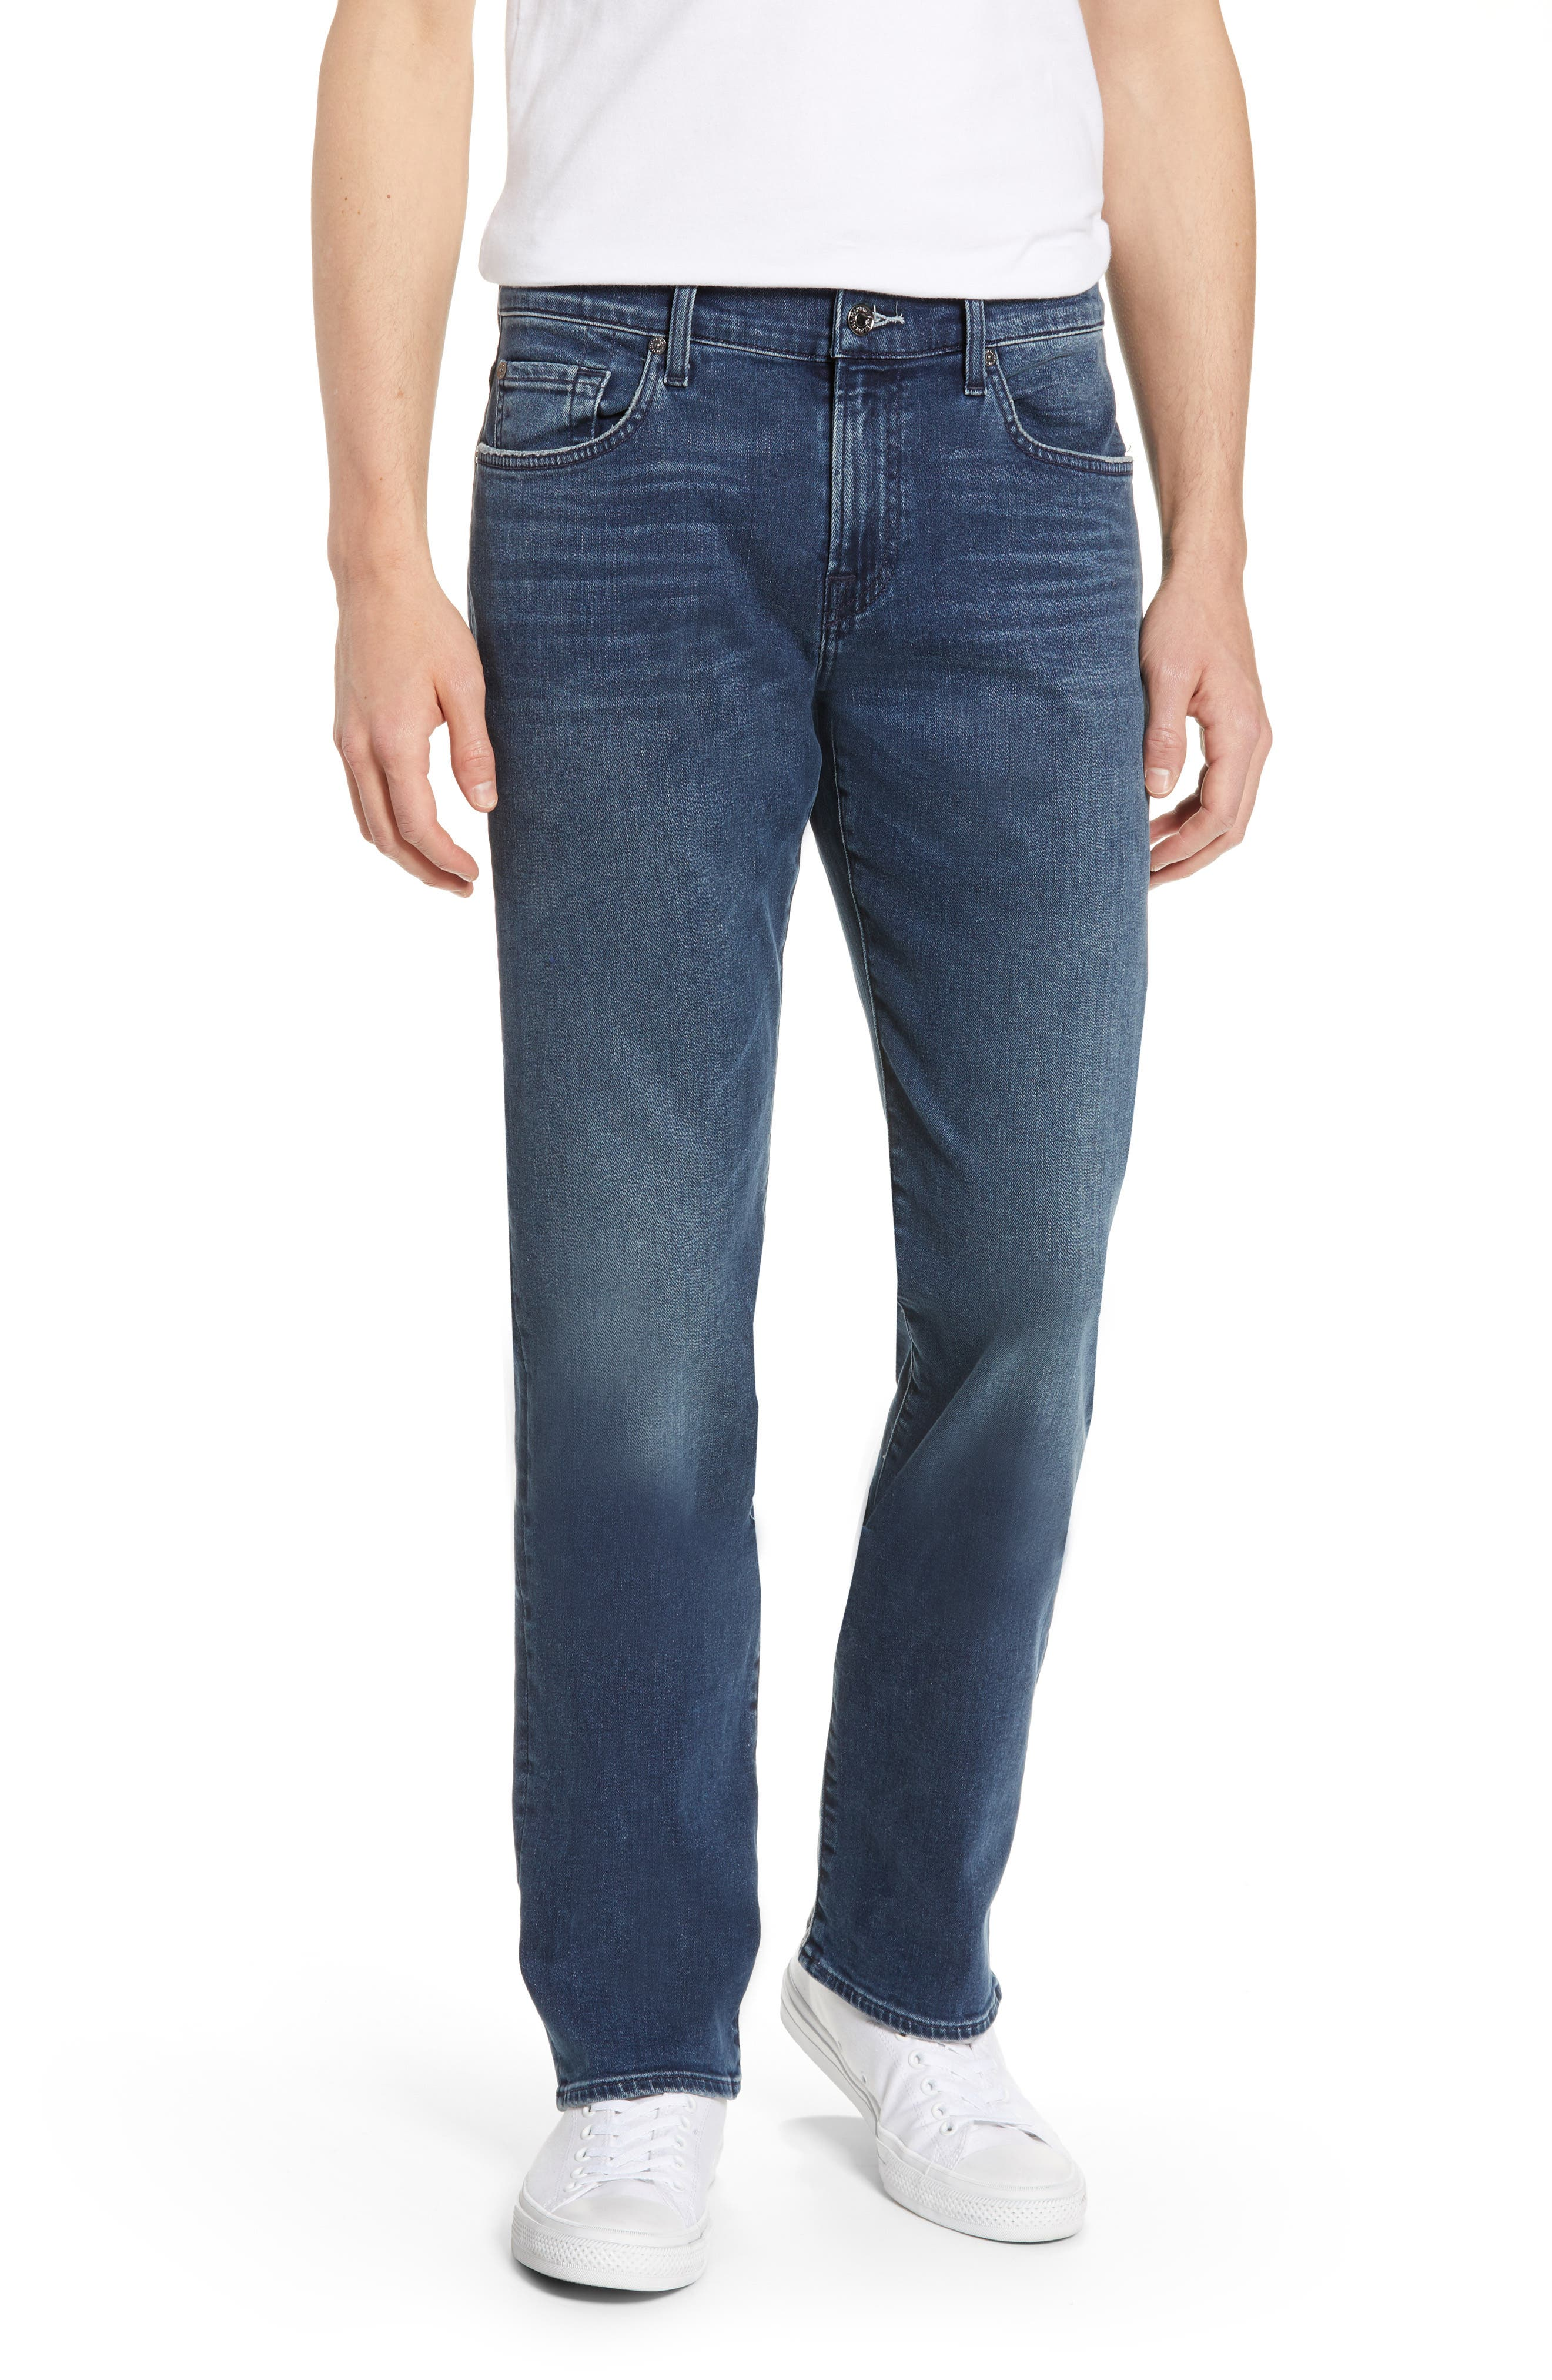 7 FOR ALL MANKIND<SUP>®</SUP>, Standard Straight Leg Jeans, Main thumbnail 1, color, INVINCIBLE